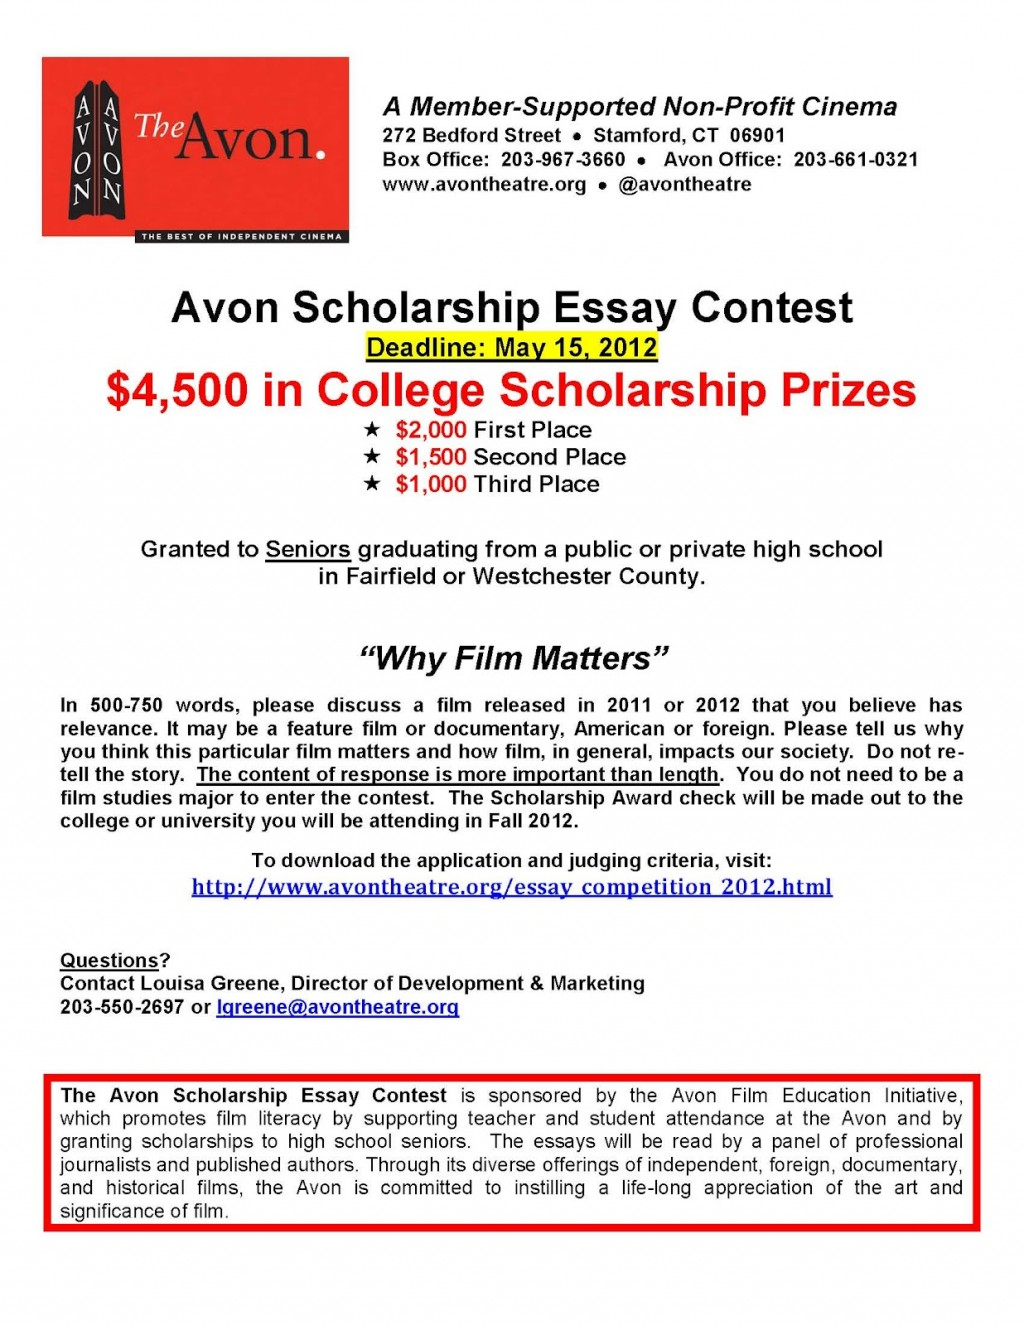 002 Scholarships No Essay College Scholarship Prowler Free For High School Seniors Avonscholarshipessaycontest2012 In Texas California Class Of Short Best 2019 2017 Large